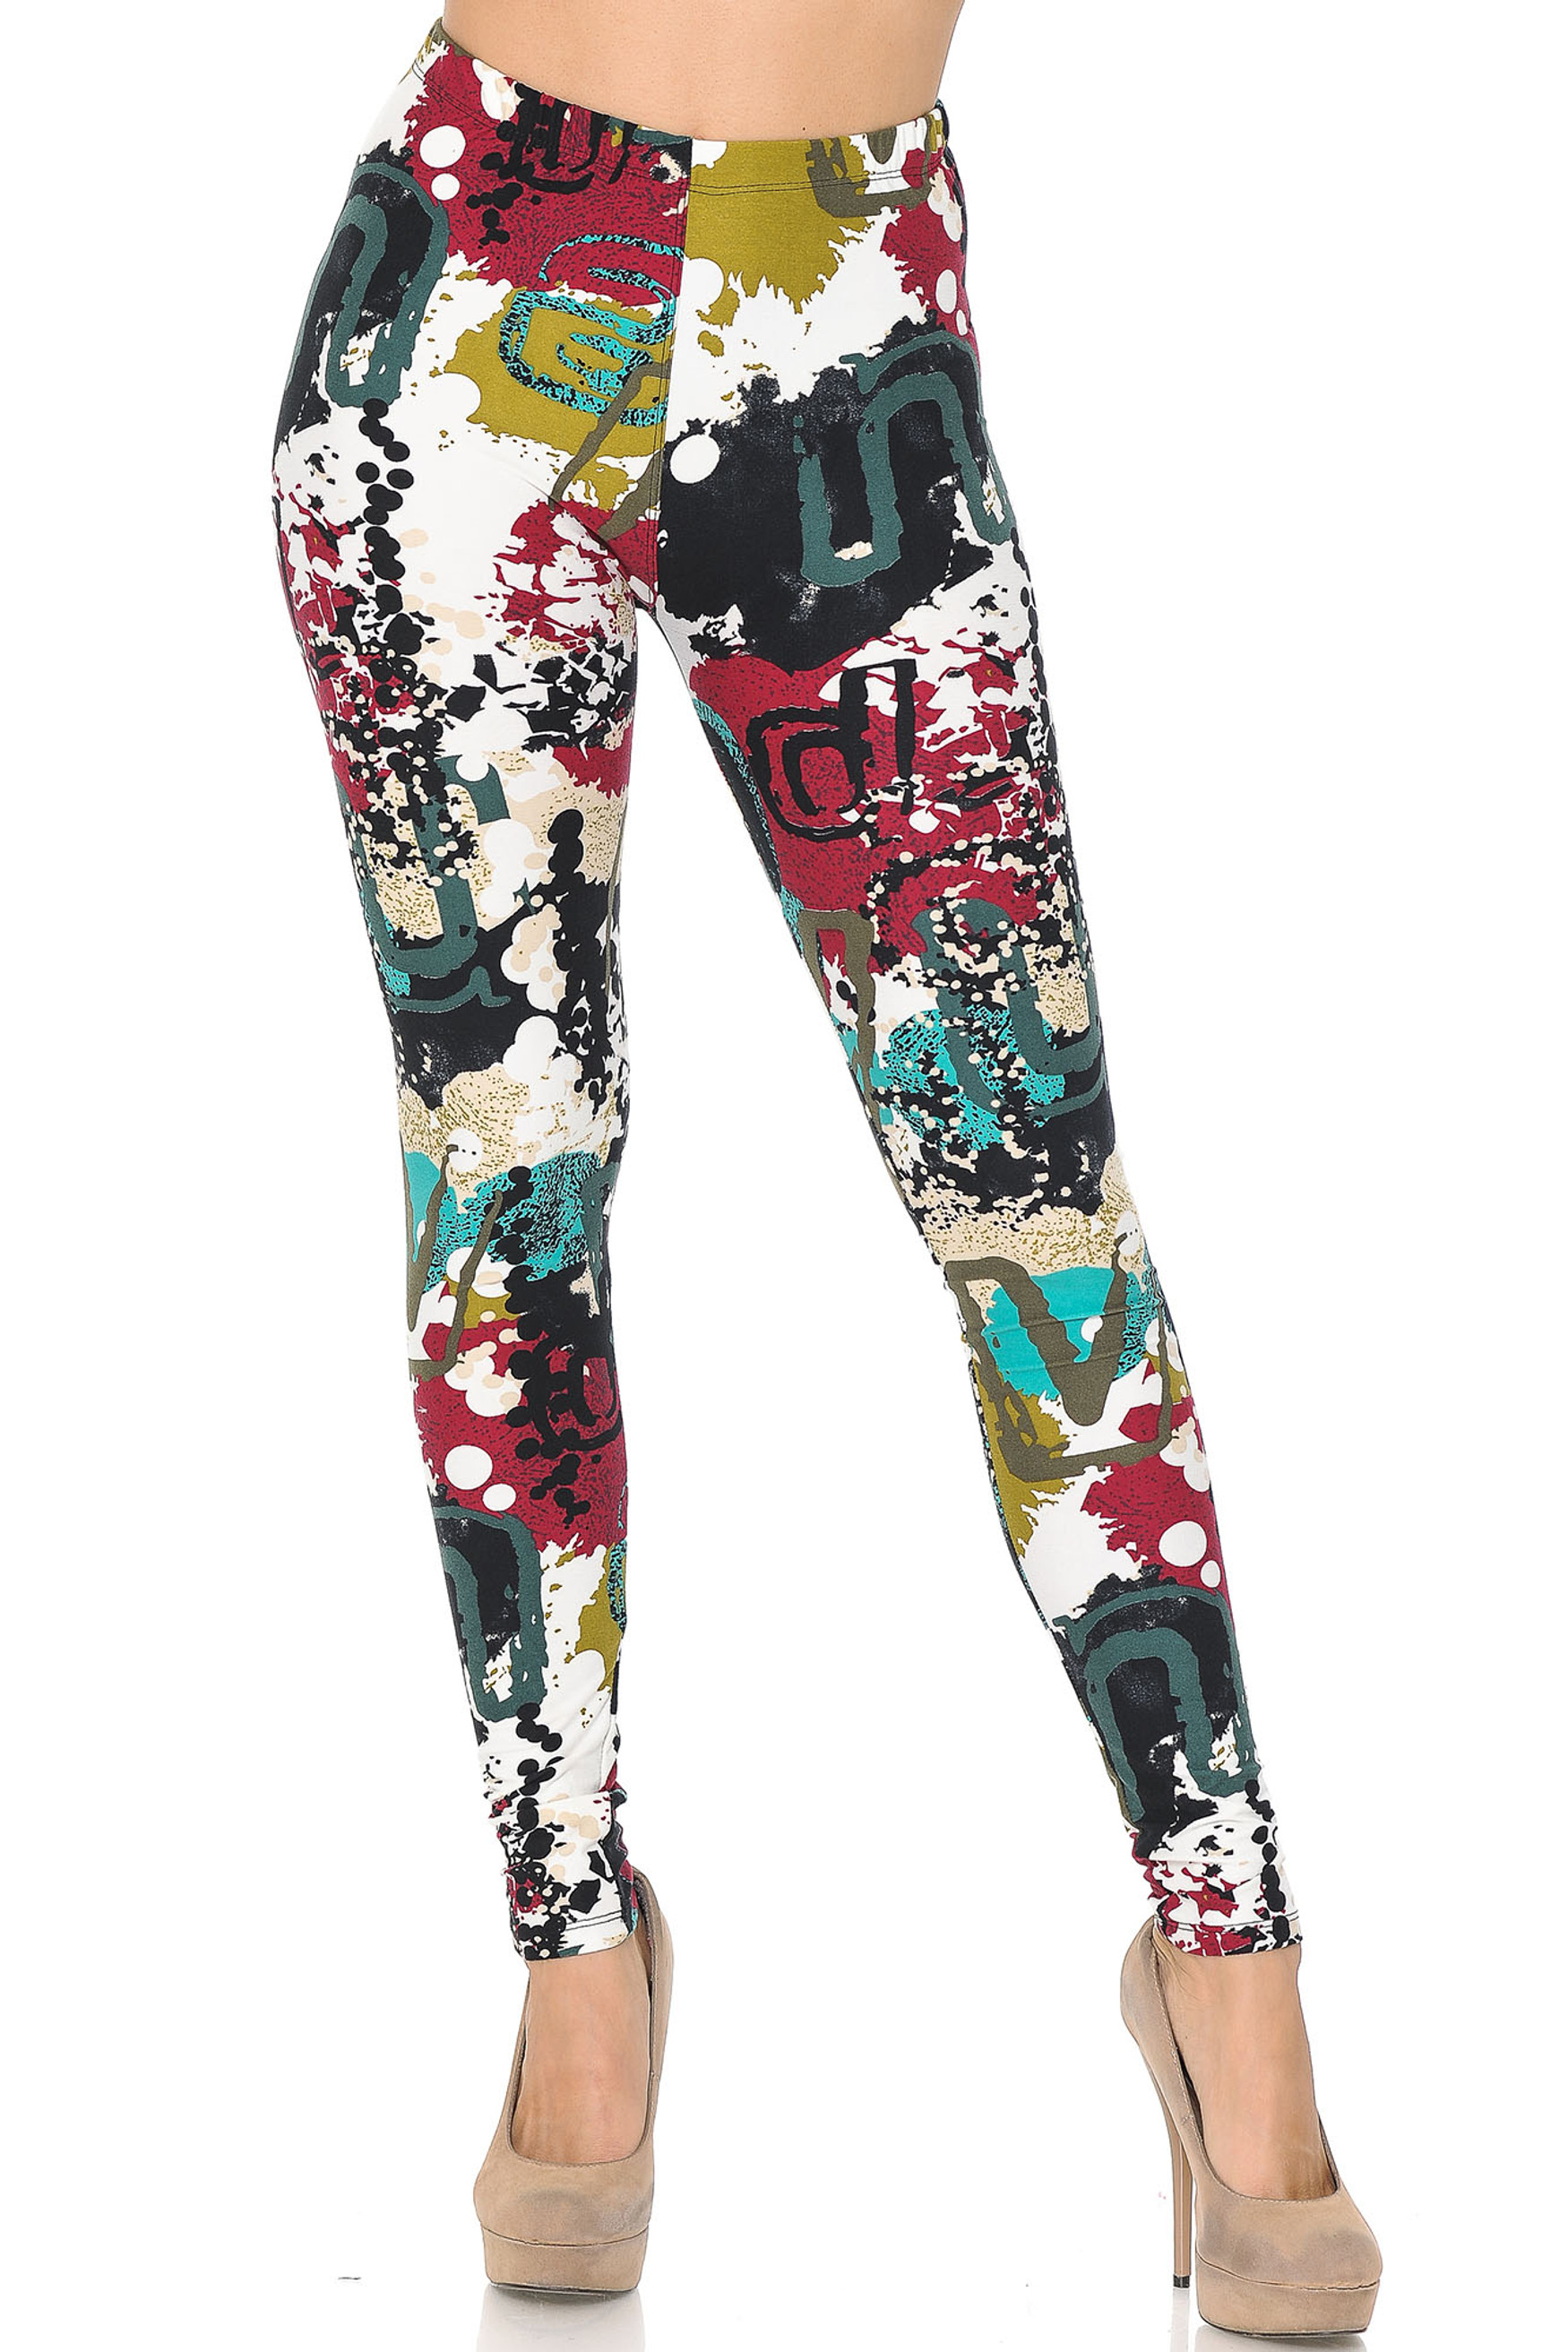 Soft Brushed Summer Picasso High Waisted Plus Size Leggings - 3X - 5X